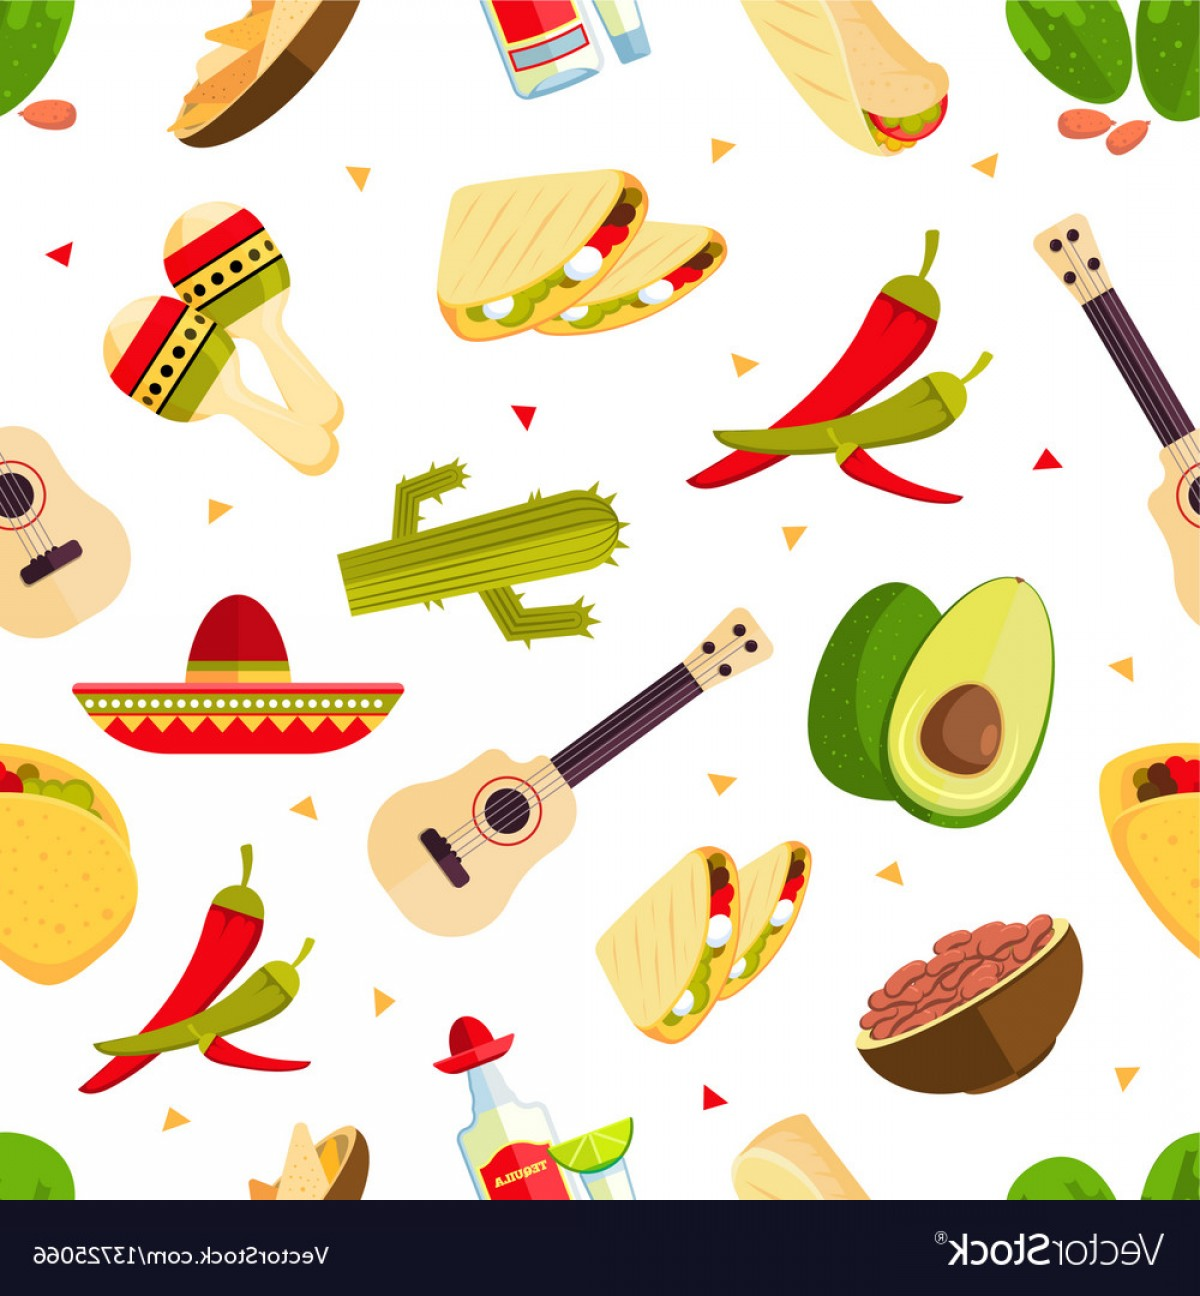 Aztec Cactus Vector: Aztec Theme Cartoon Mexican Food Tequila Red Vector